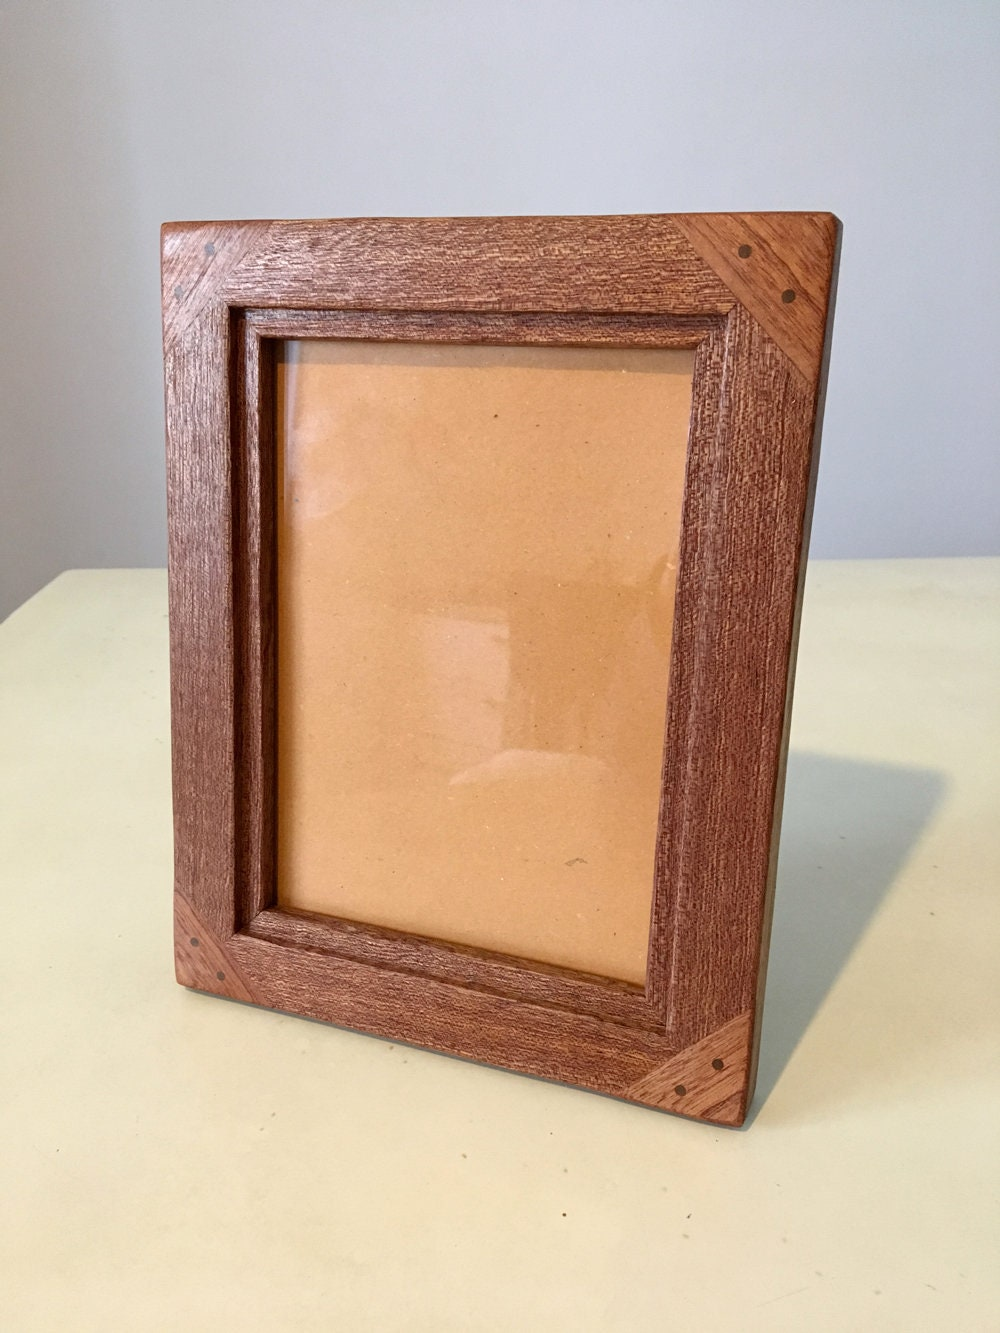 13x18 Wooden Picture Frame Rustic handcrafted mahogany made in Italy ...